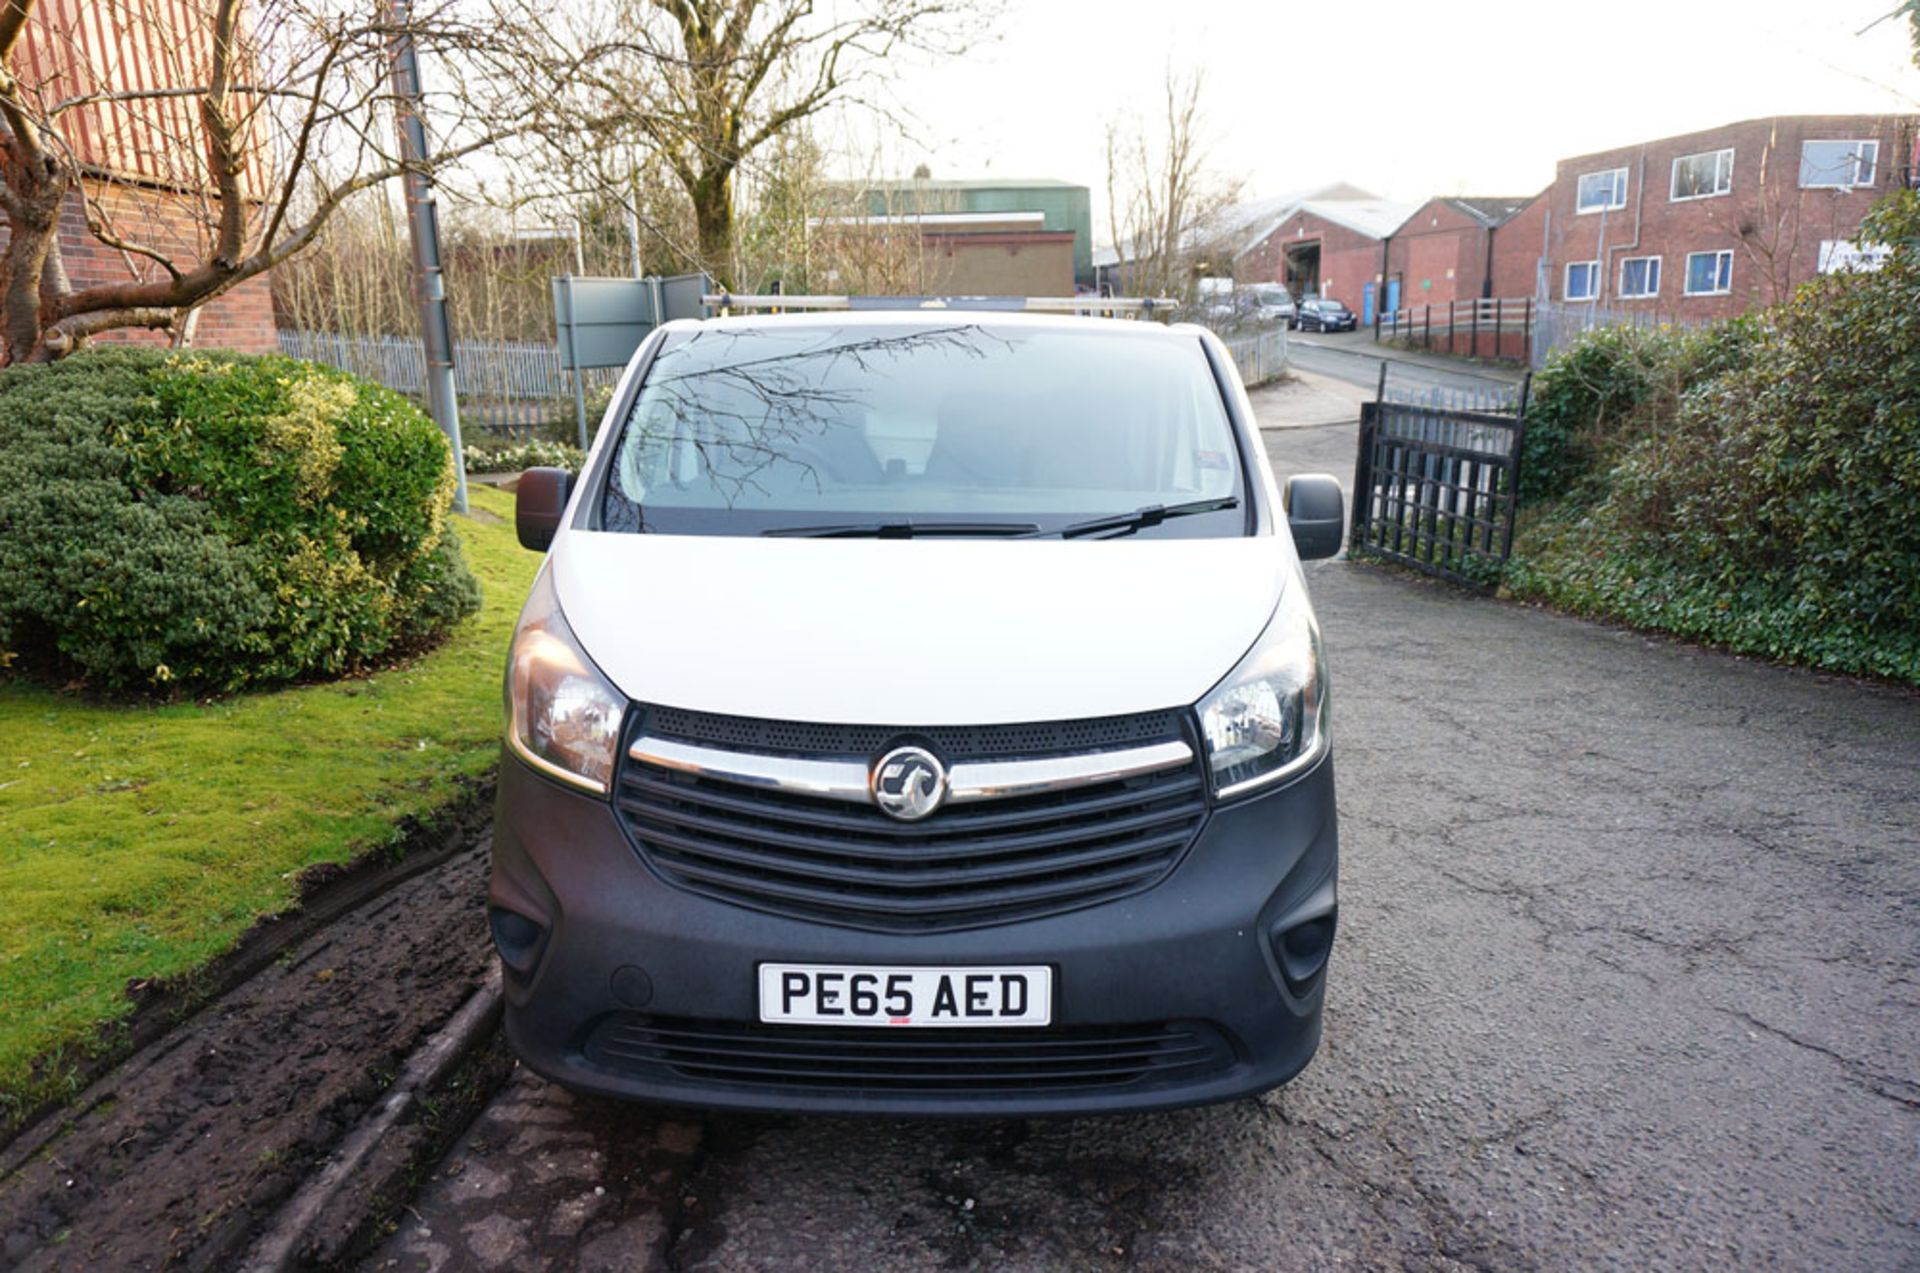 Lot 3 - VAUXHALL Vivaro, 1.6 CDTI, Panel Van 115PS, 2015 (65 reg)